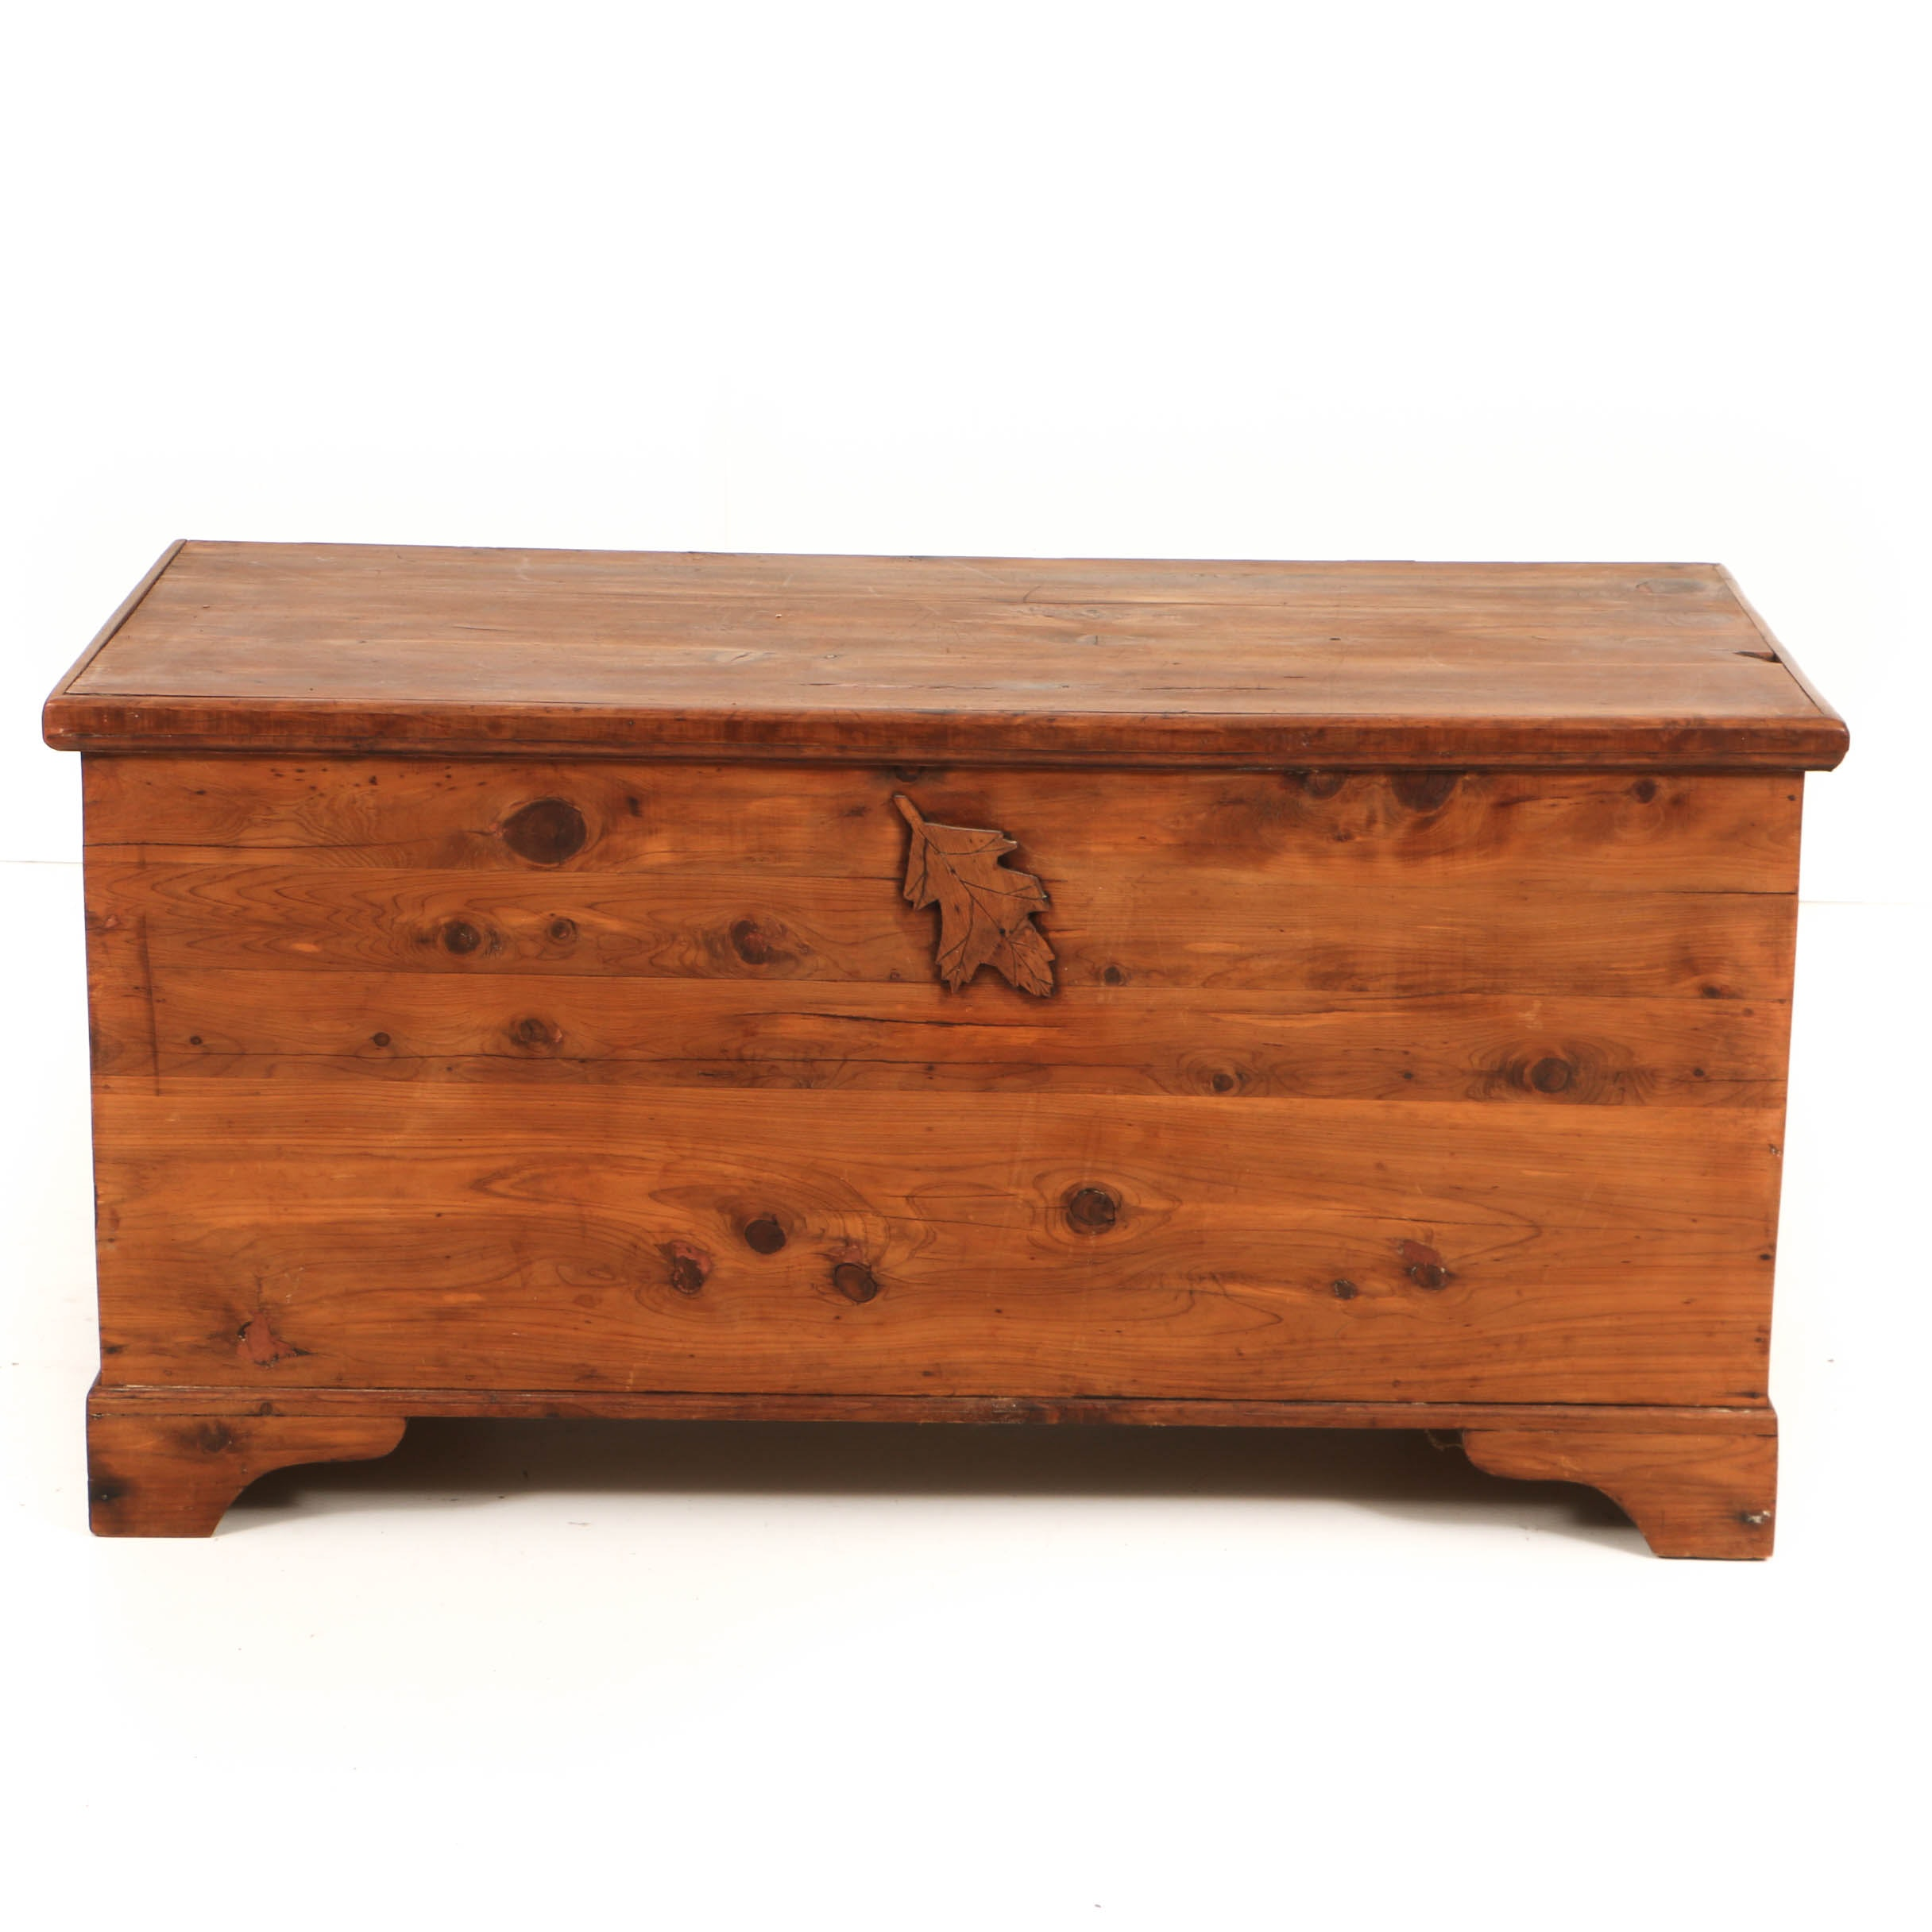 Vintage Lift-Top Cedar Chest